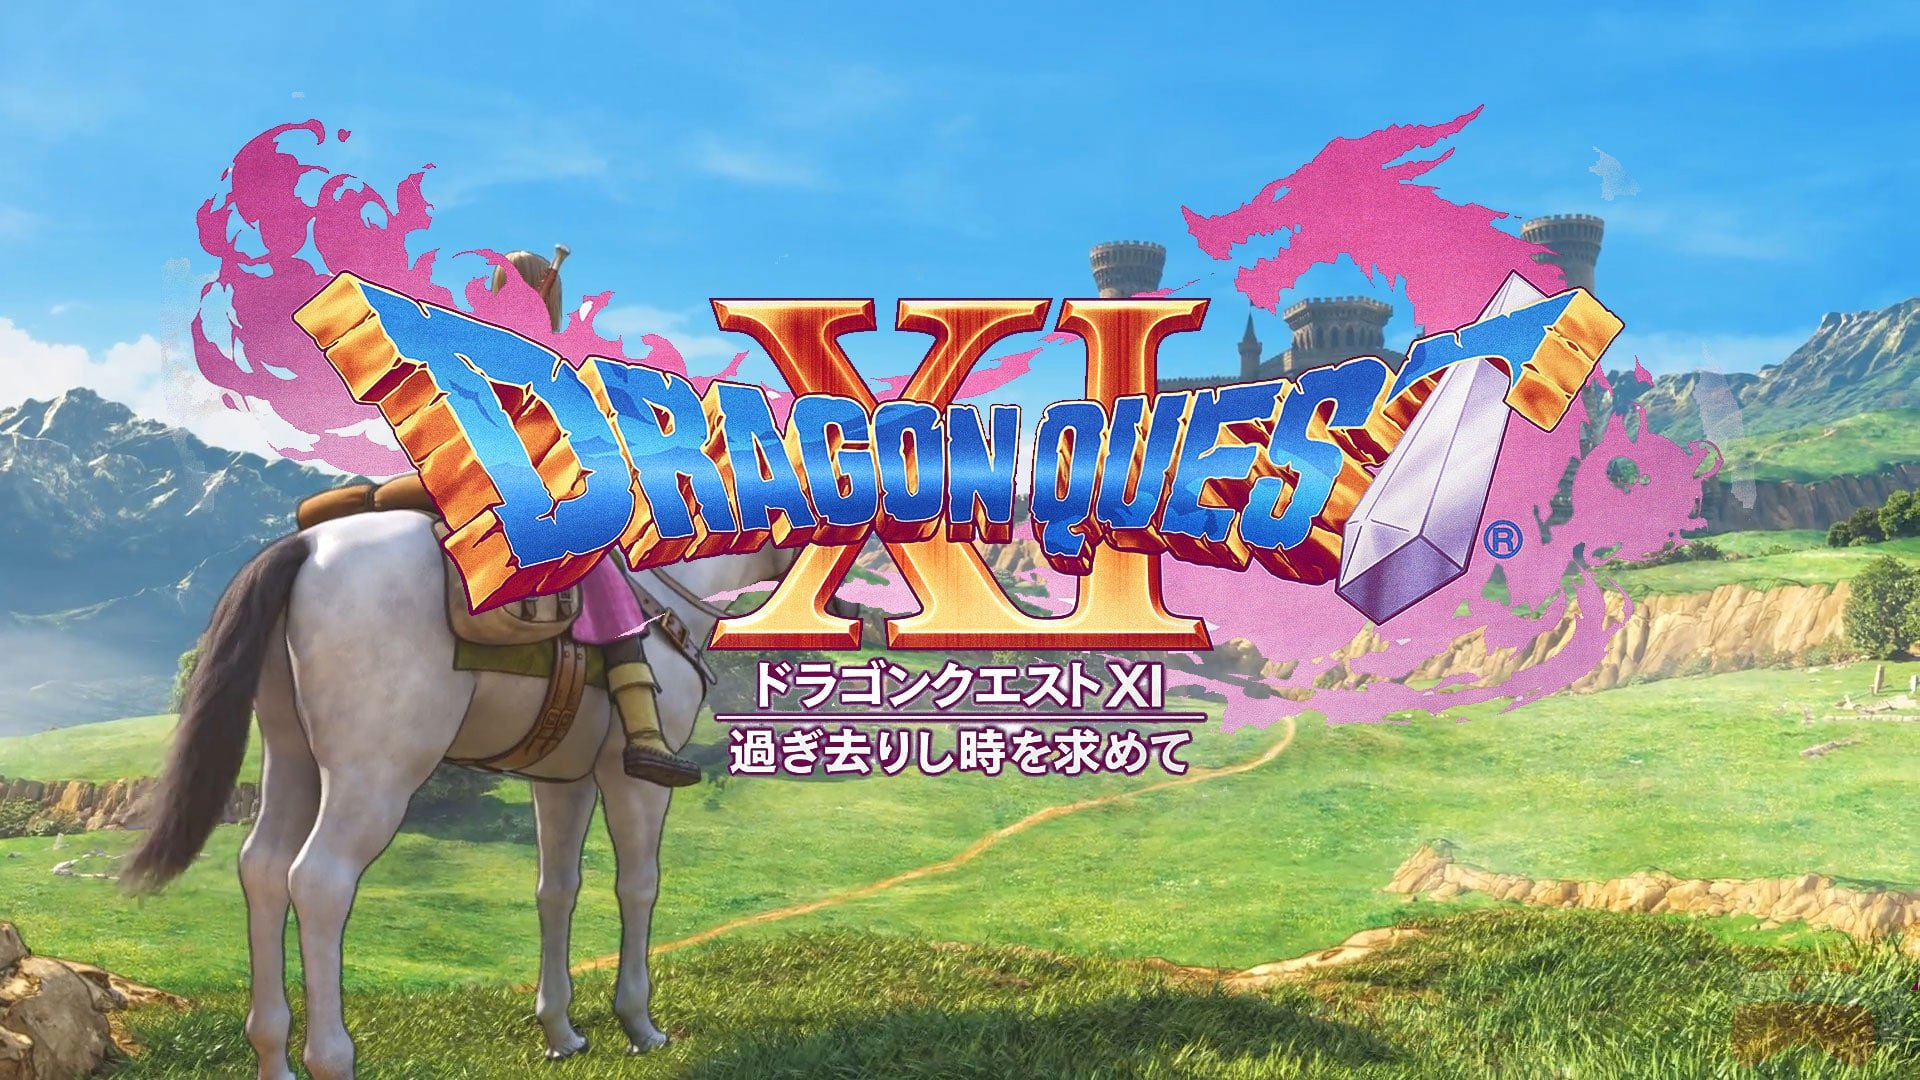 Dragon Quest Xi Officially Confirmed For The West Nintendo Switch